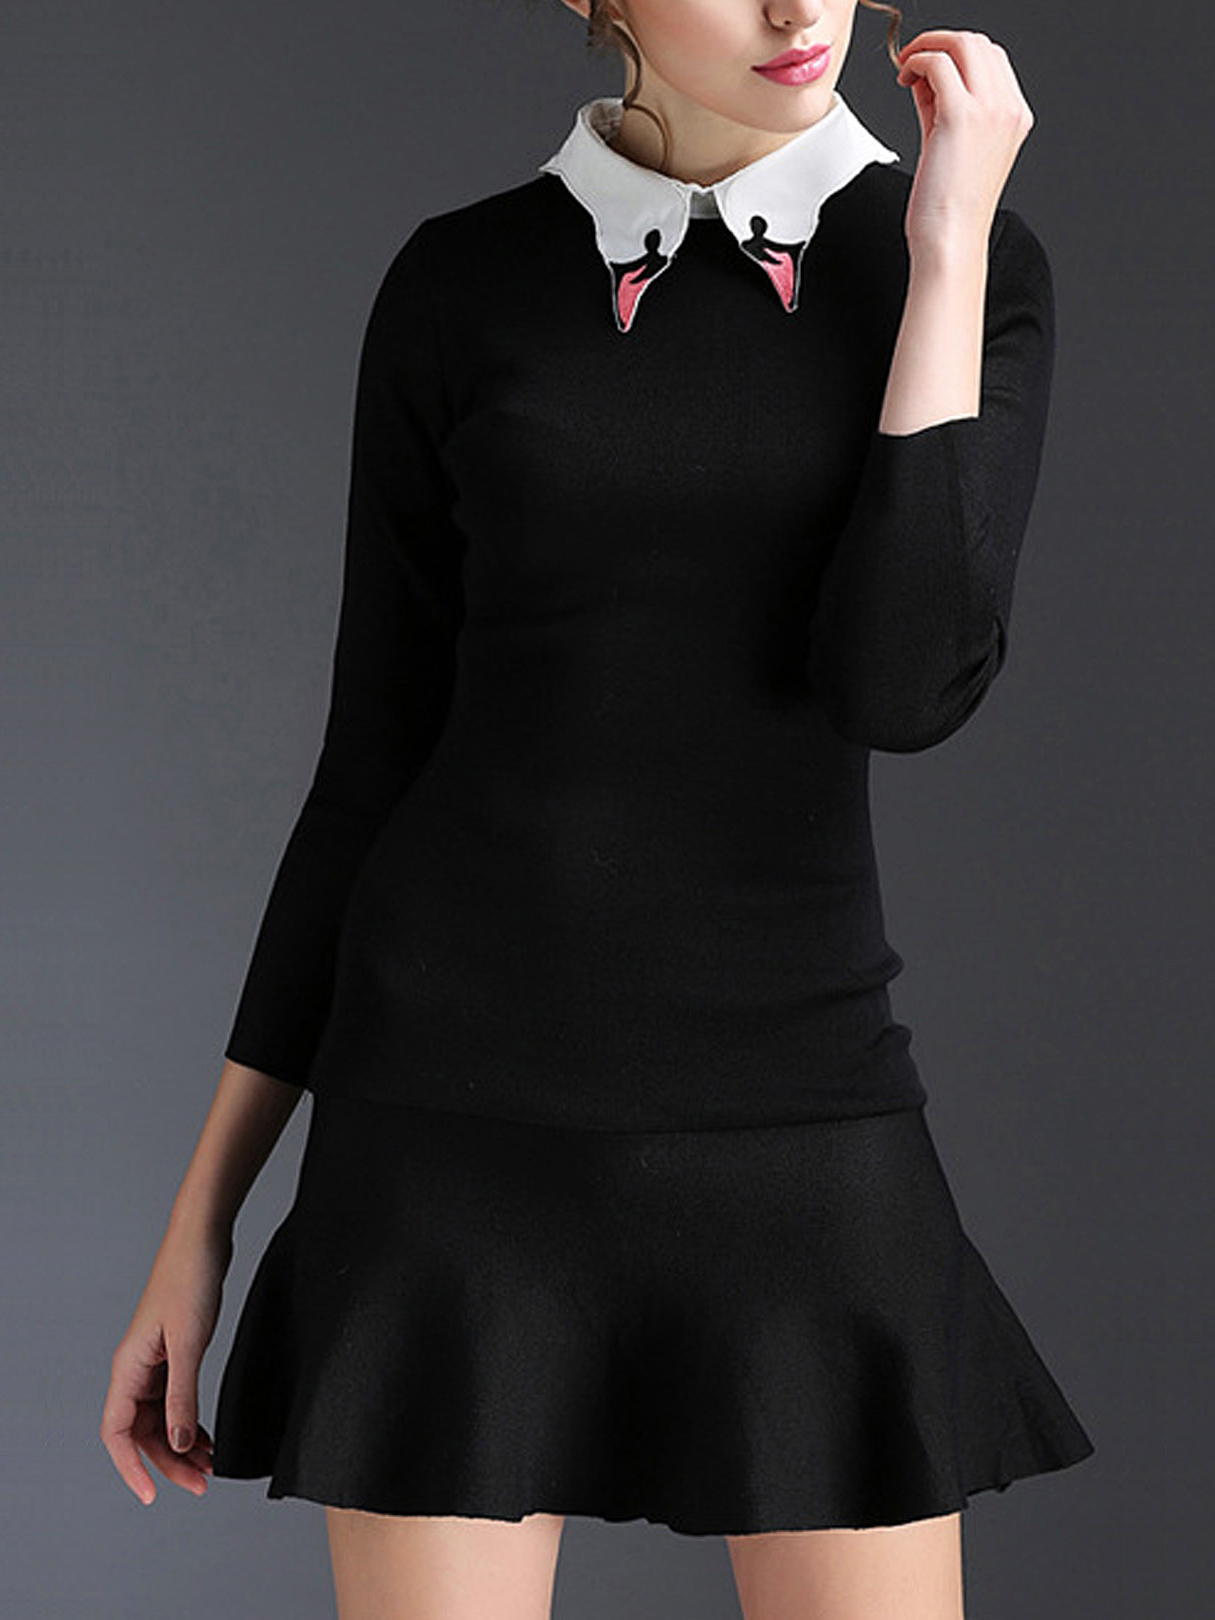 Black Stitching Pointed Collar Flounced Hem Mini Dress